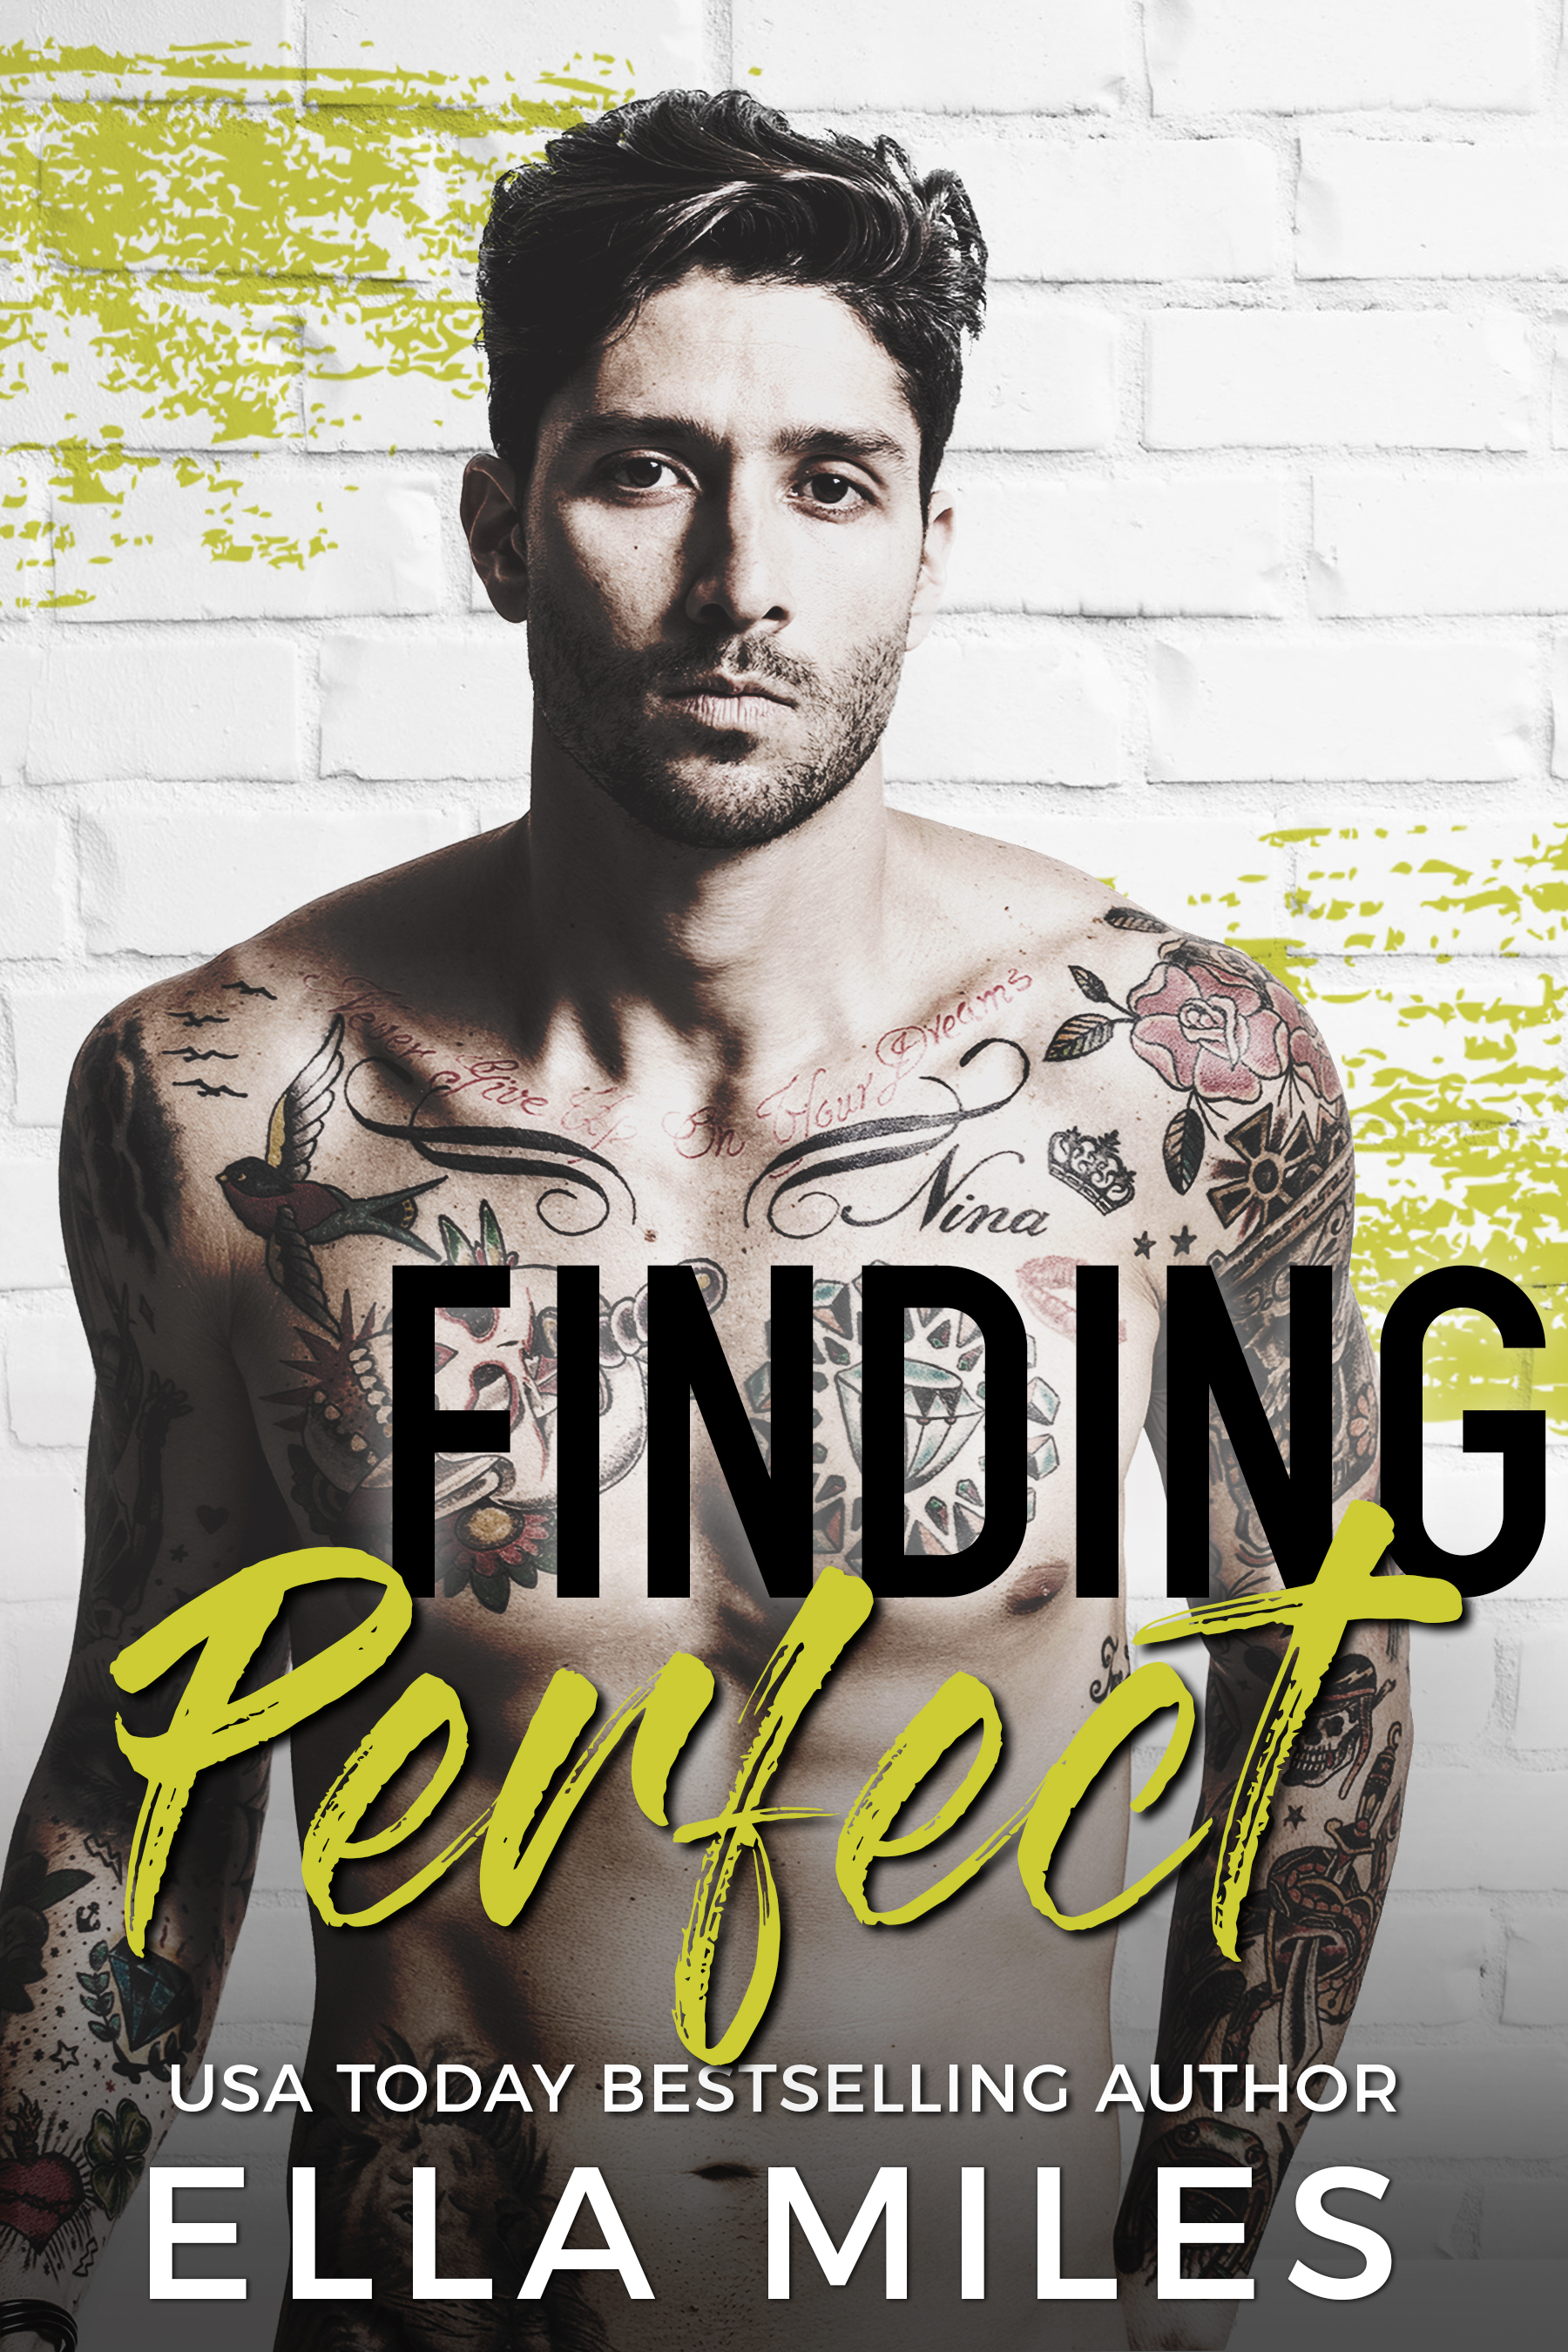 Finding perfect - Now an Amazon Top 50 BestsellerI want the perfect man, and Ace Knight isn't him.  He's a foul-mouthed, pothead, tattooed bastard.  He may have saved my life, but he also cost me my nursing career with one smug kiss.  Now I'm broke, homeless, and jobless.   I wanted a man in a suit.  Tall, dark, and handsome.  Not broken, cursing, and cynical.   Knight thinks I'm the perfect woman for him. Perfect to help him keep his ex-wife from inheriting his millions.  I can't refuse his offer. I need the money.  But what if he expects me to…sleep with him.  I can't…I won't…until he smirks and then I'm toast.  I think I need a new plan.   Bad boy + flawed girl does not equal perfect.